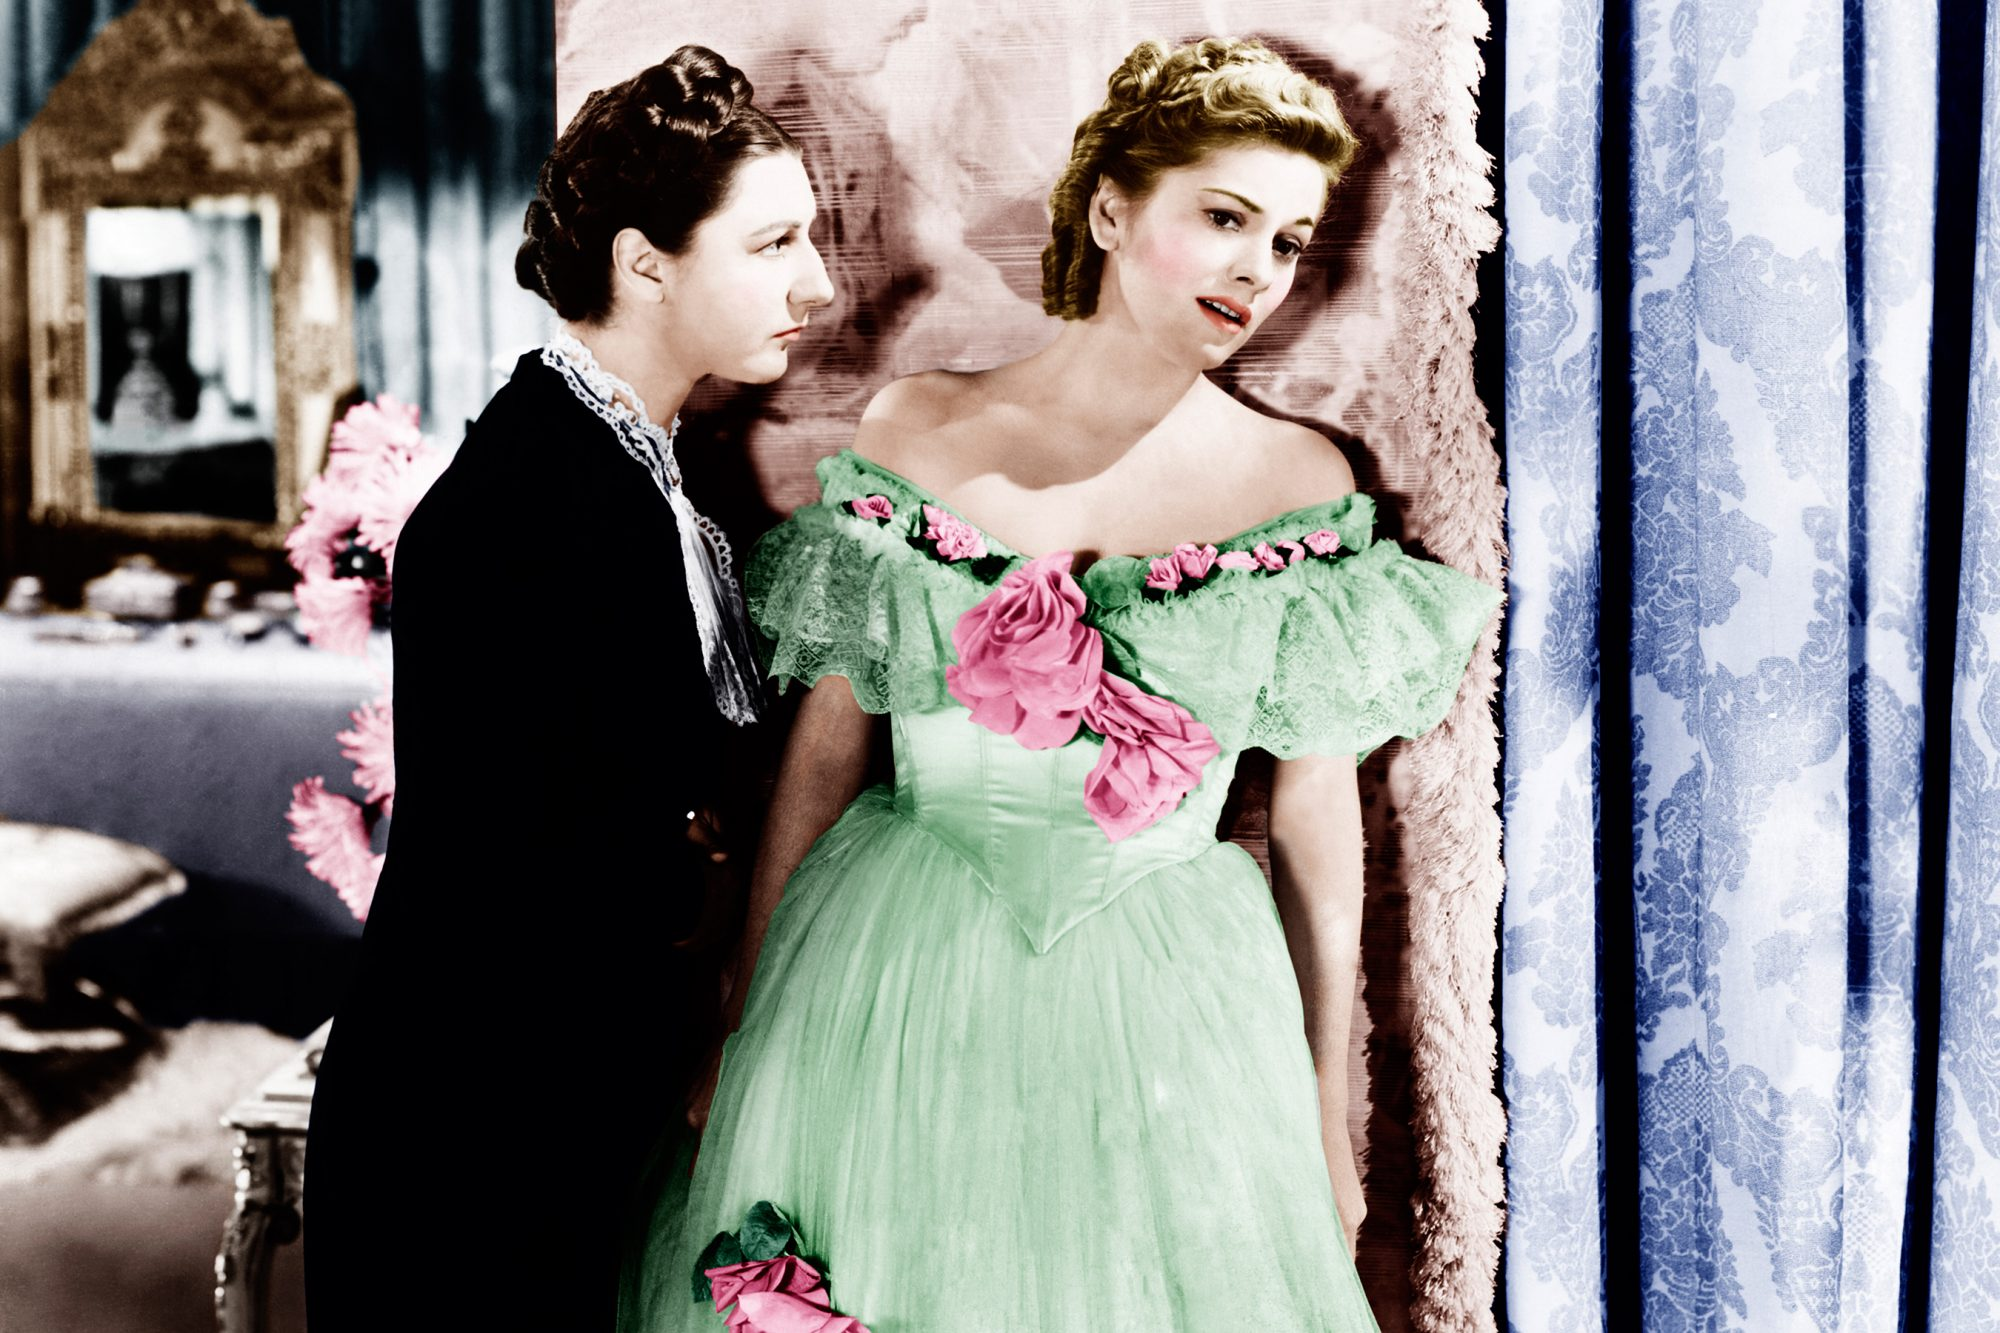 REBECCA, from left: Judith Anderson, Joan Fontaine, 1940